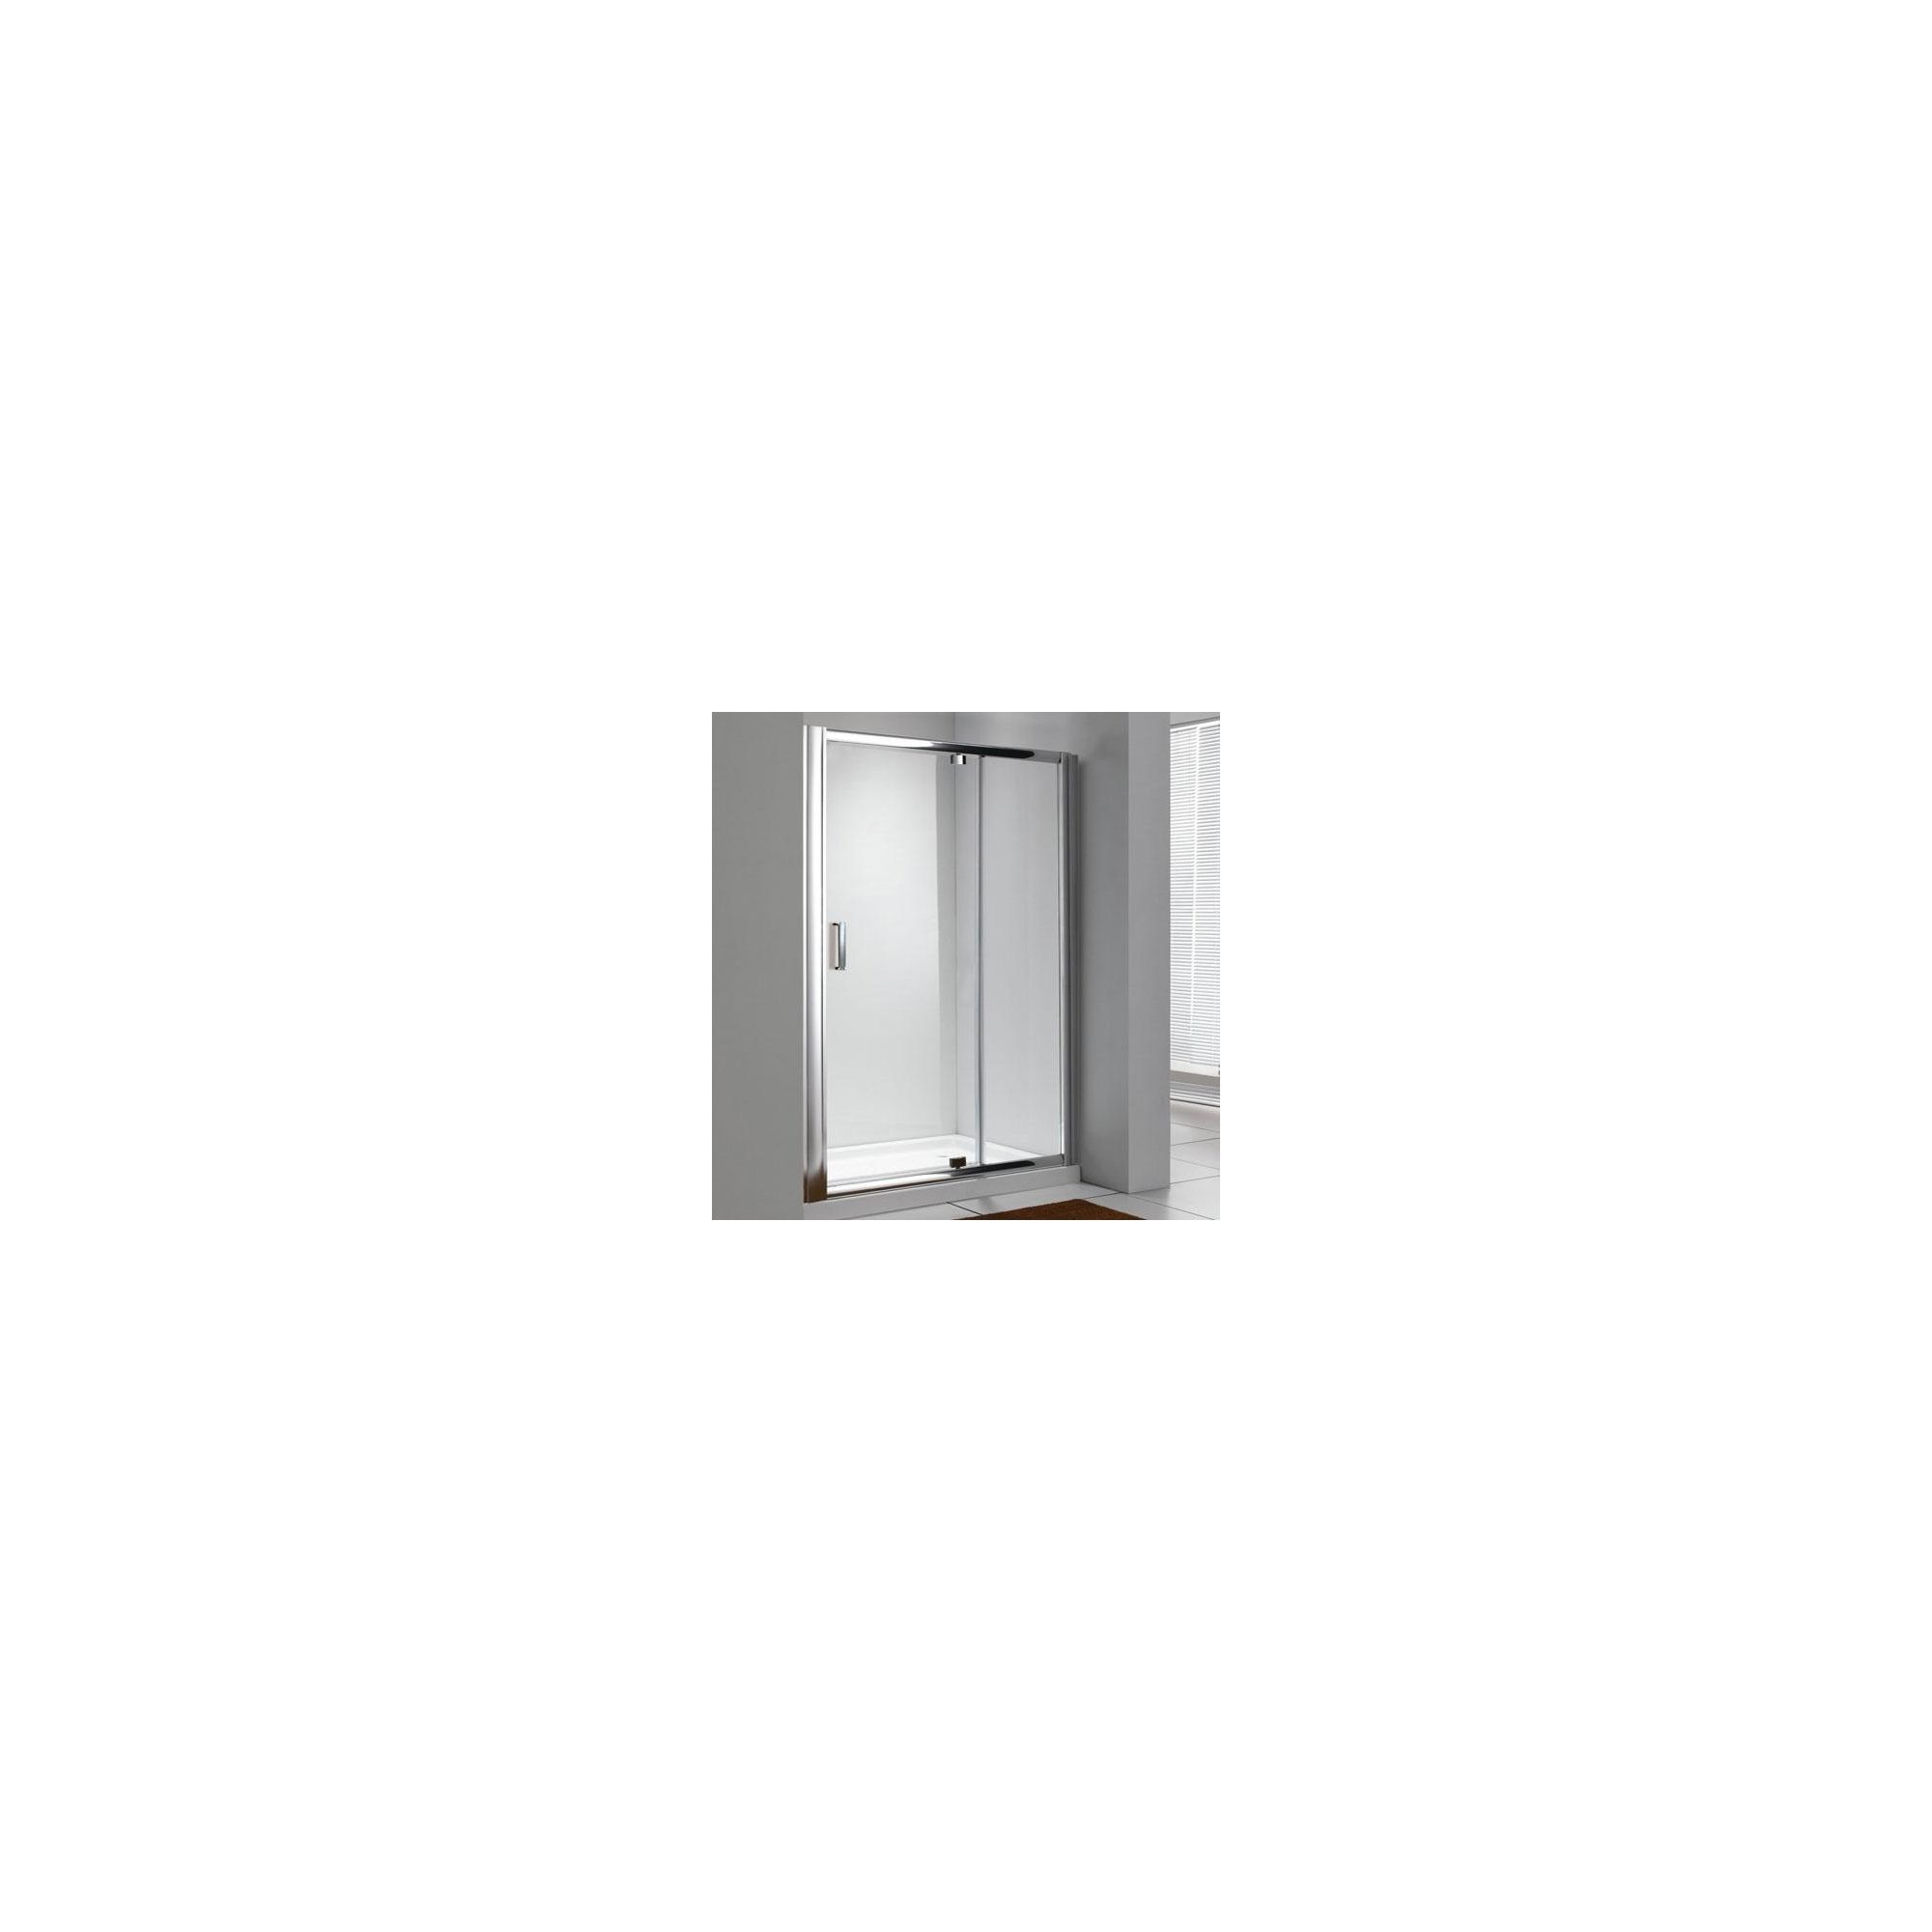 Duchy Style Pivot Door Shower Enclosure, 900mm x 700mm, 6mm Glass, Low Profile Tray at Tesco Direct